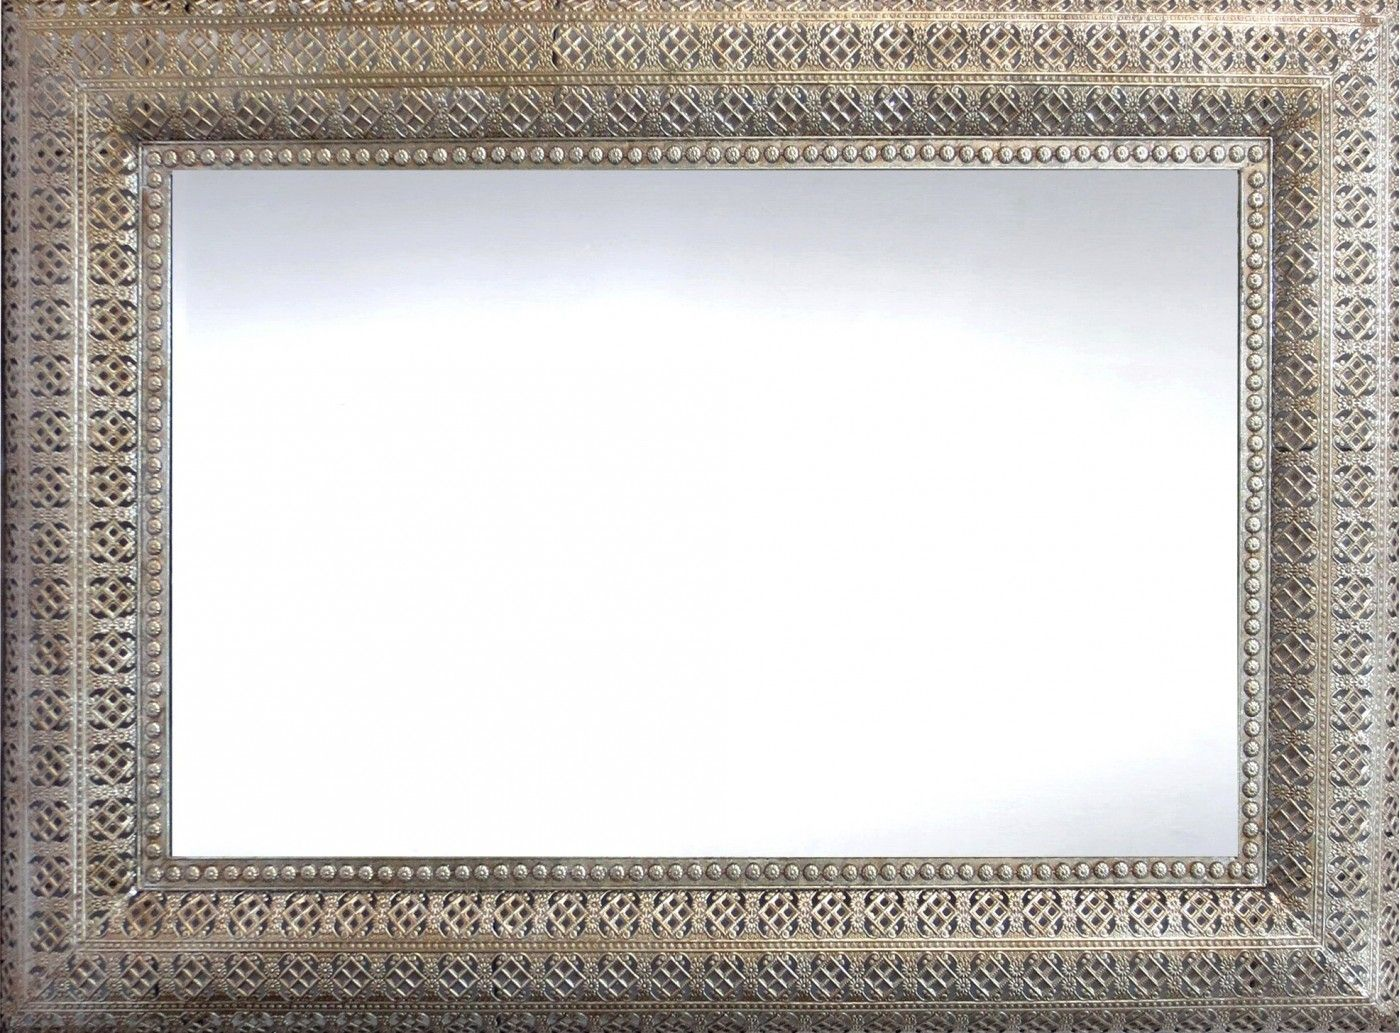 Interlace mirror champagne rectangular wall mirrors interiors interlace mirror champagne rectangular wall mirrors interiors online furniture online decorating accessories amipublicfo Gallery